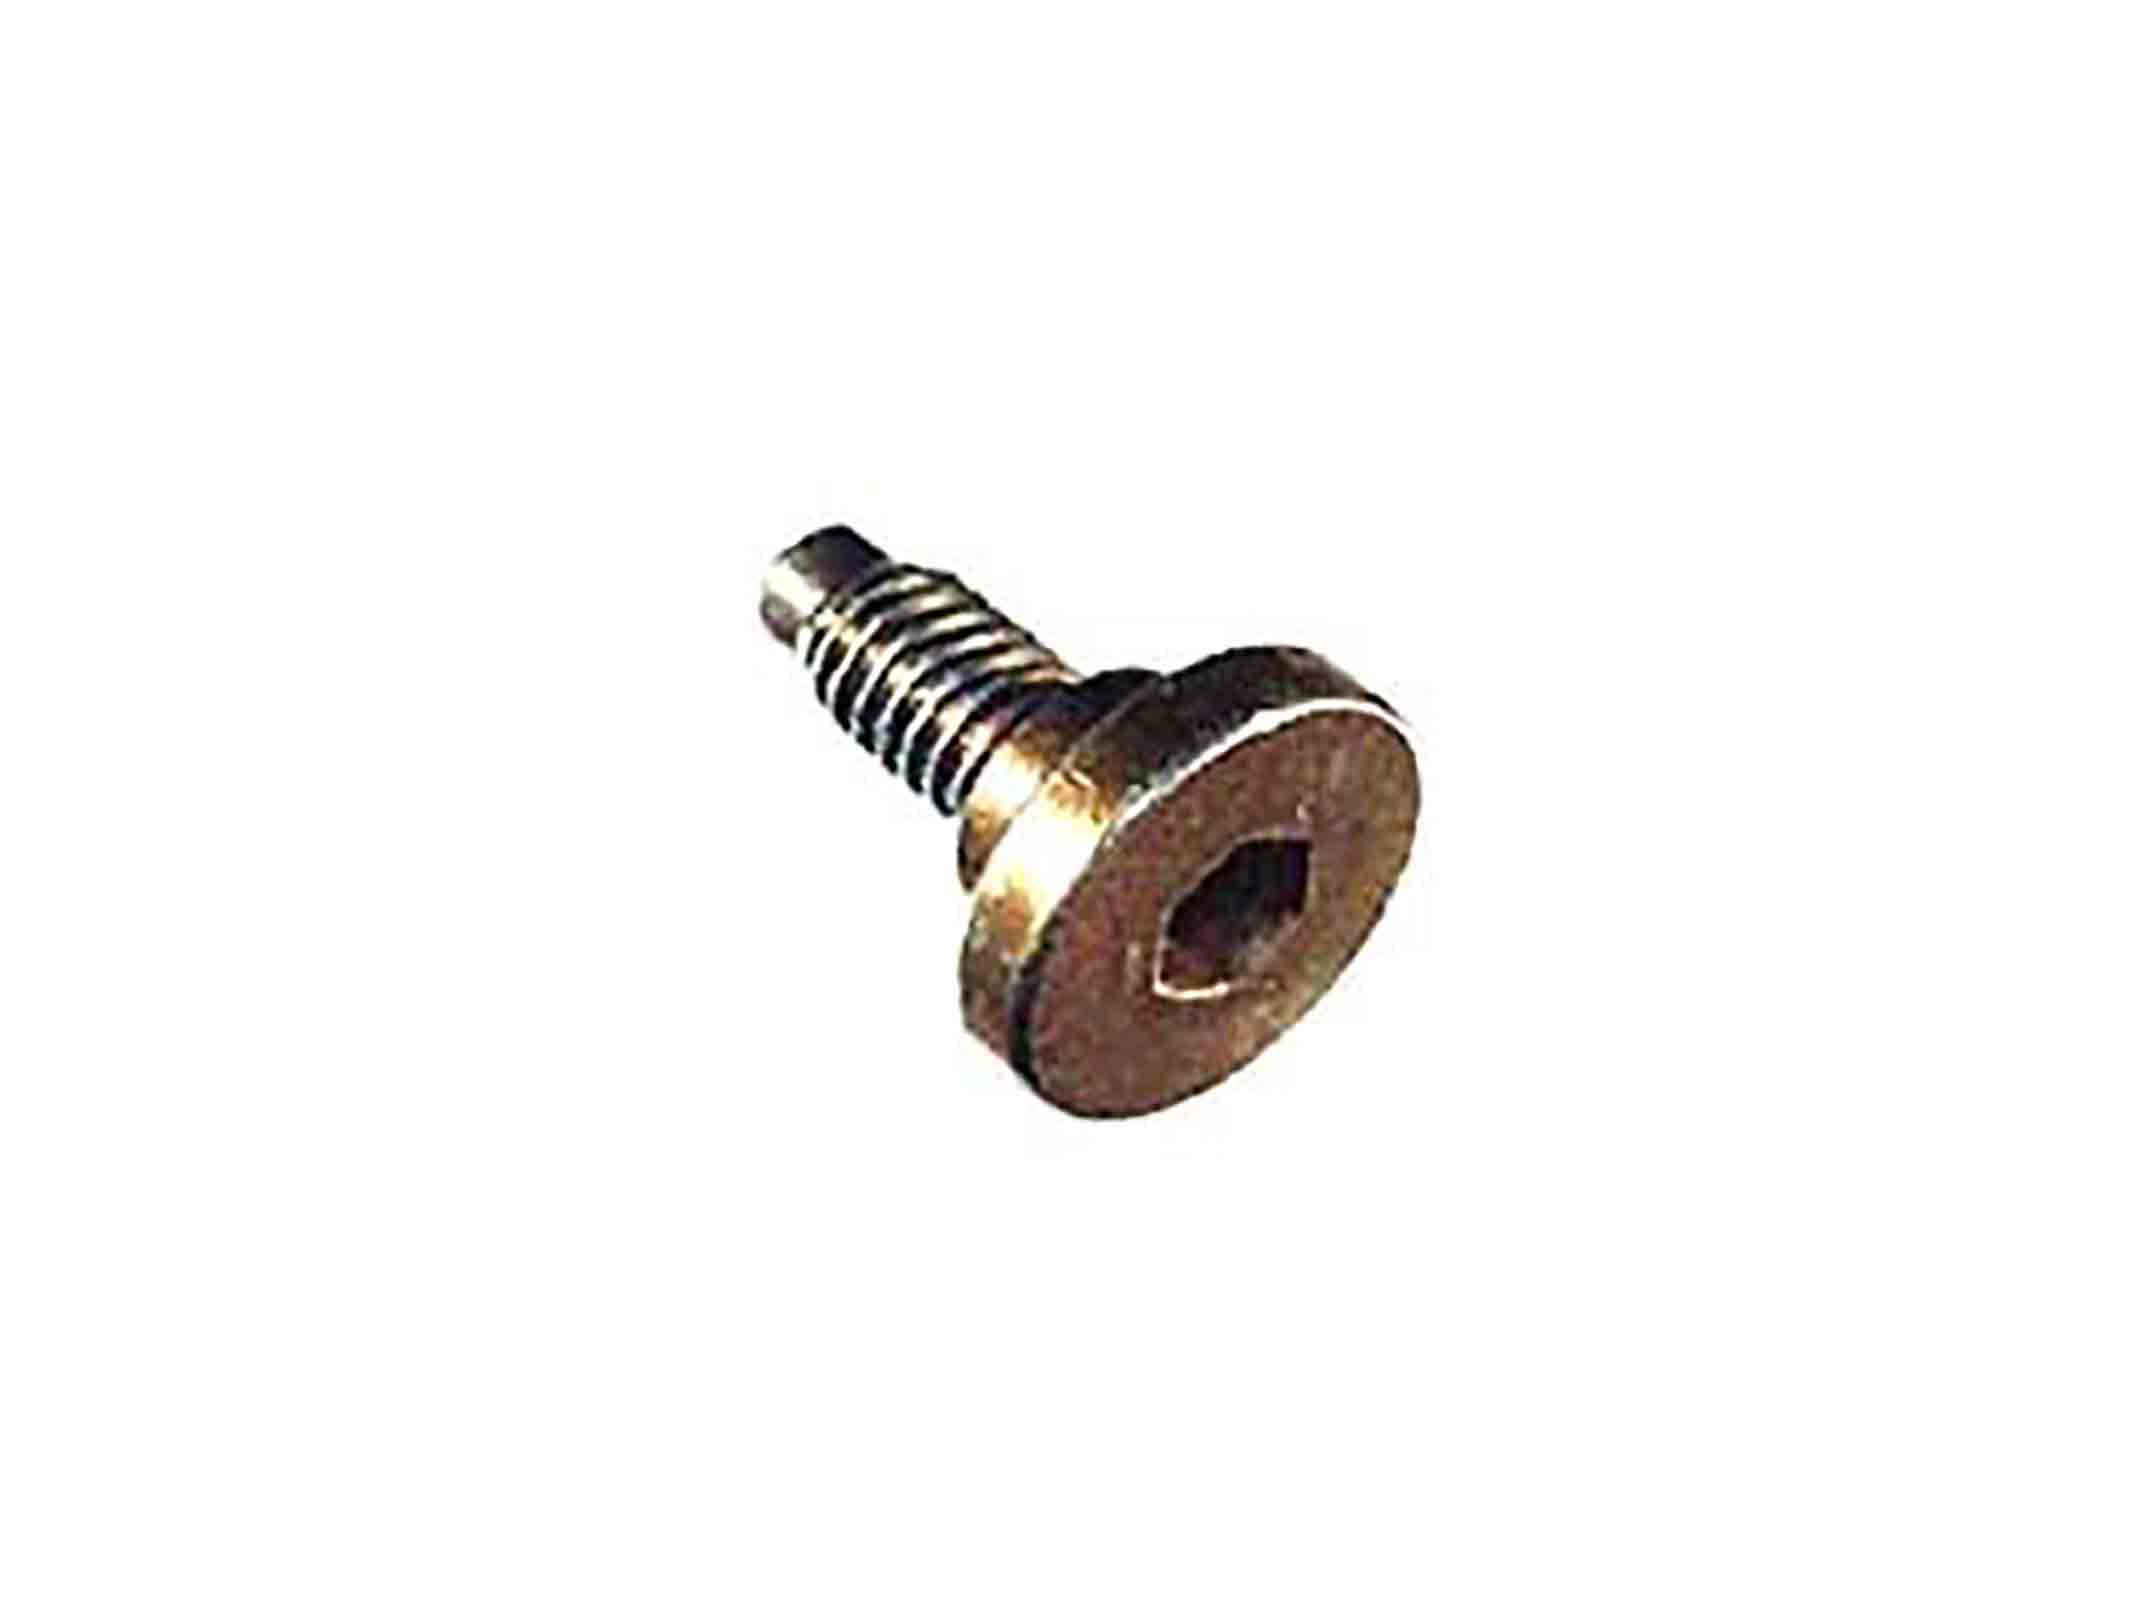 Bullone pinza freni jeep cj 77 81 assale anteriore ricambi jeep